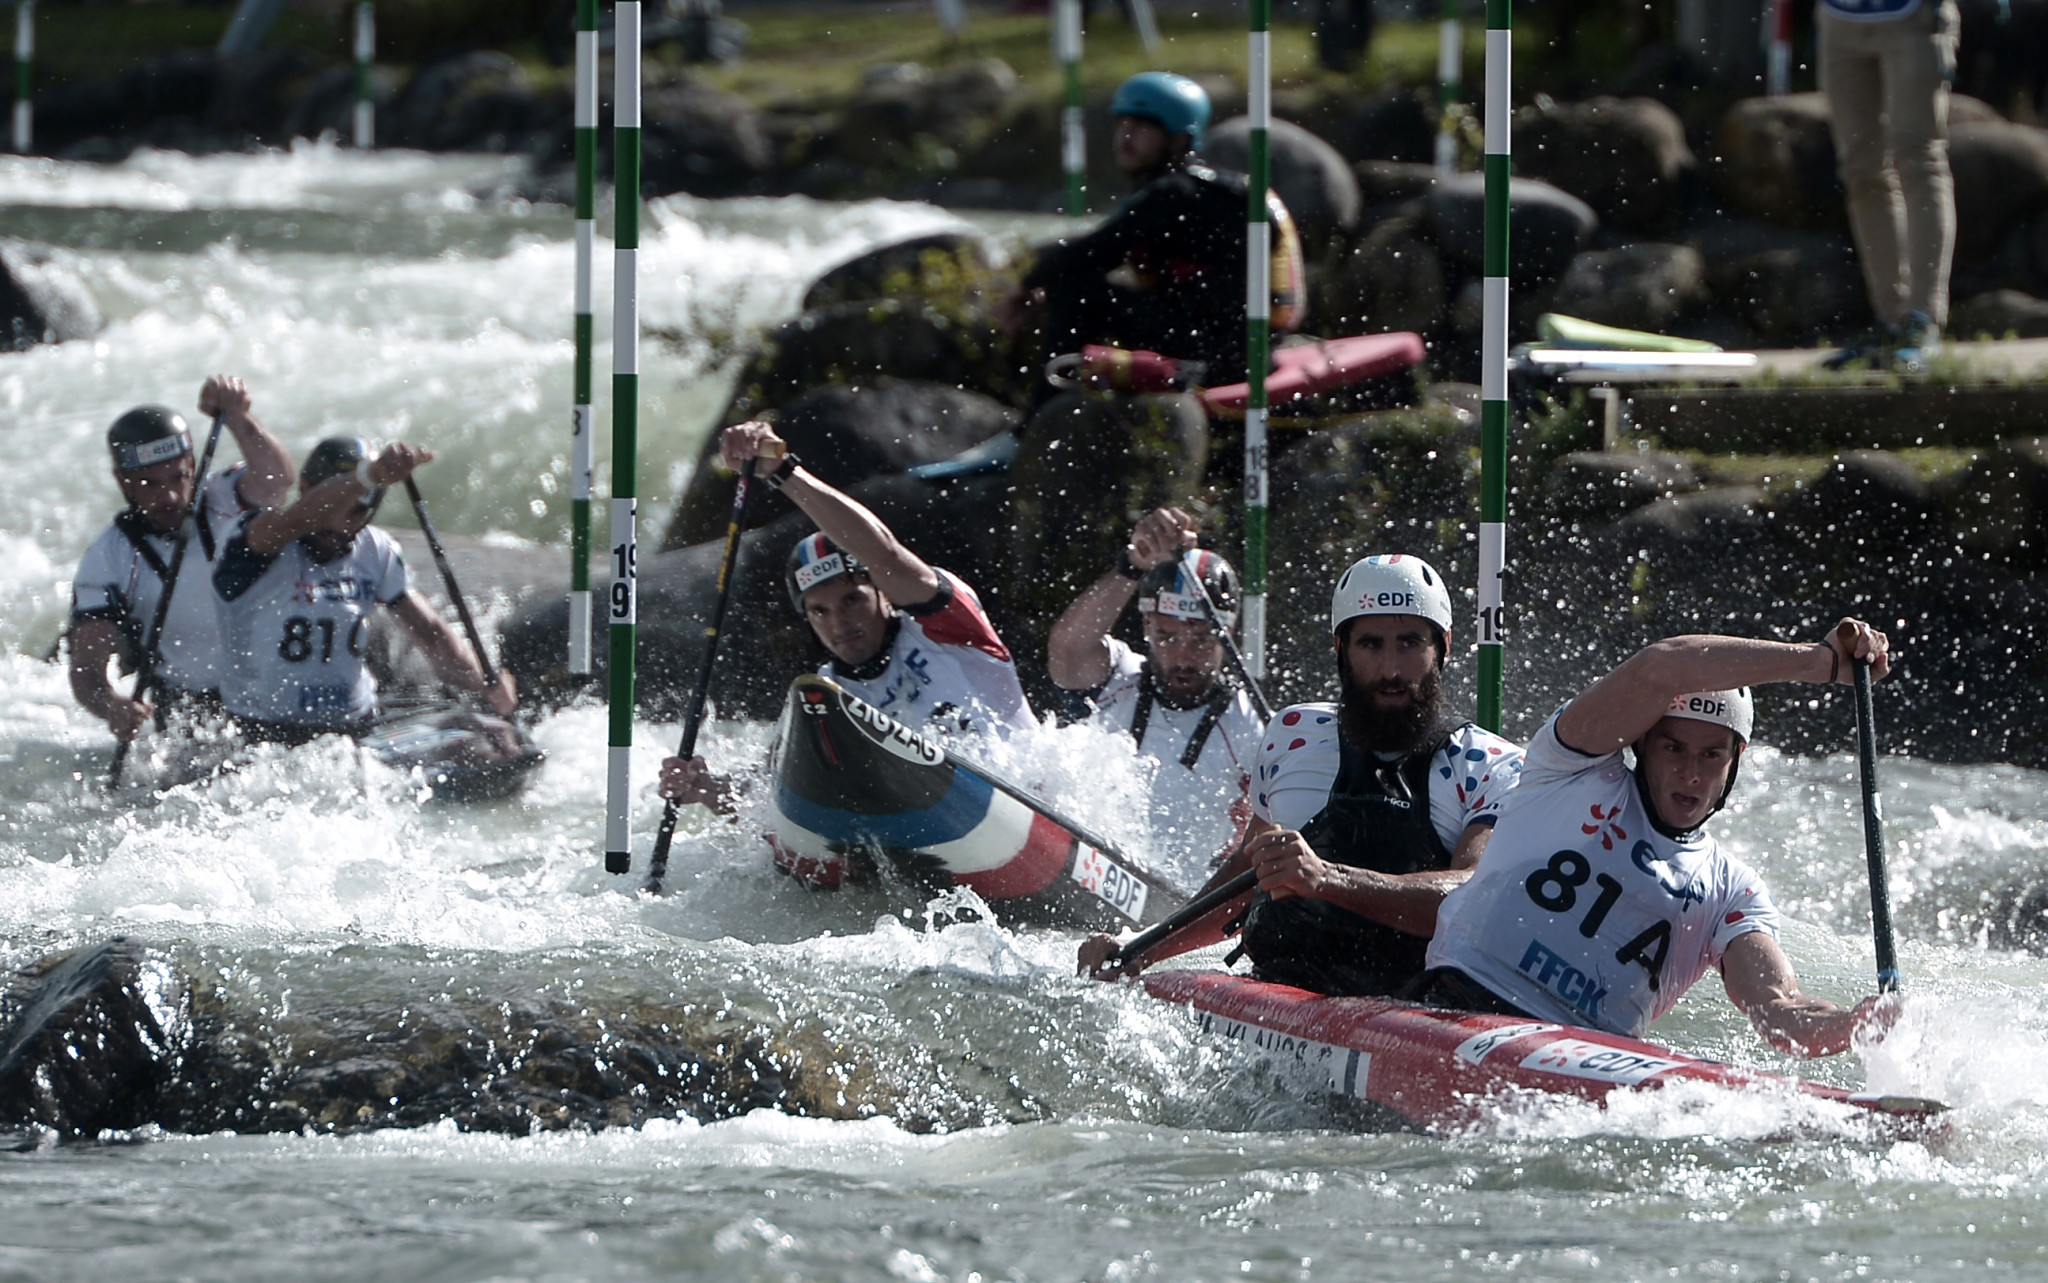 This year's Wildwater World Championships are being run in conjunction with the Canoe Slalom World Championships in Pau ©Getty Images